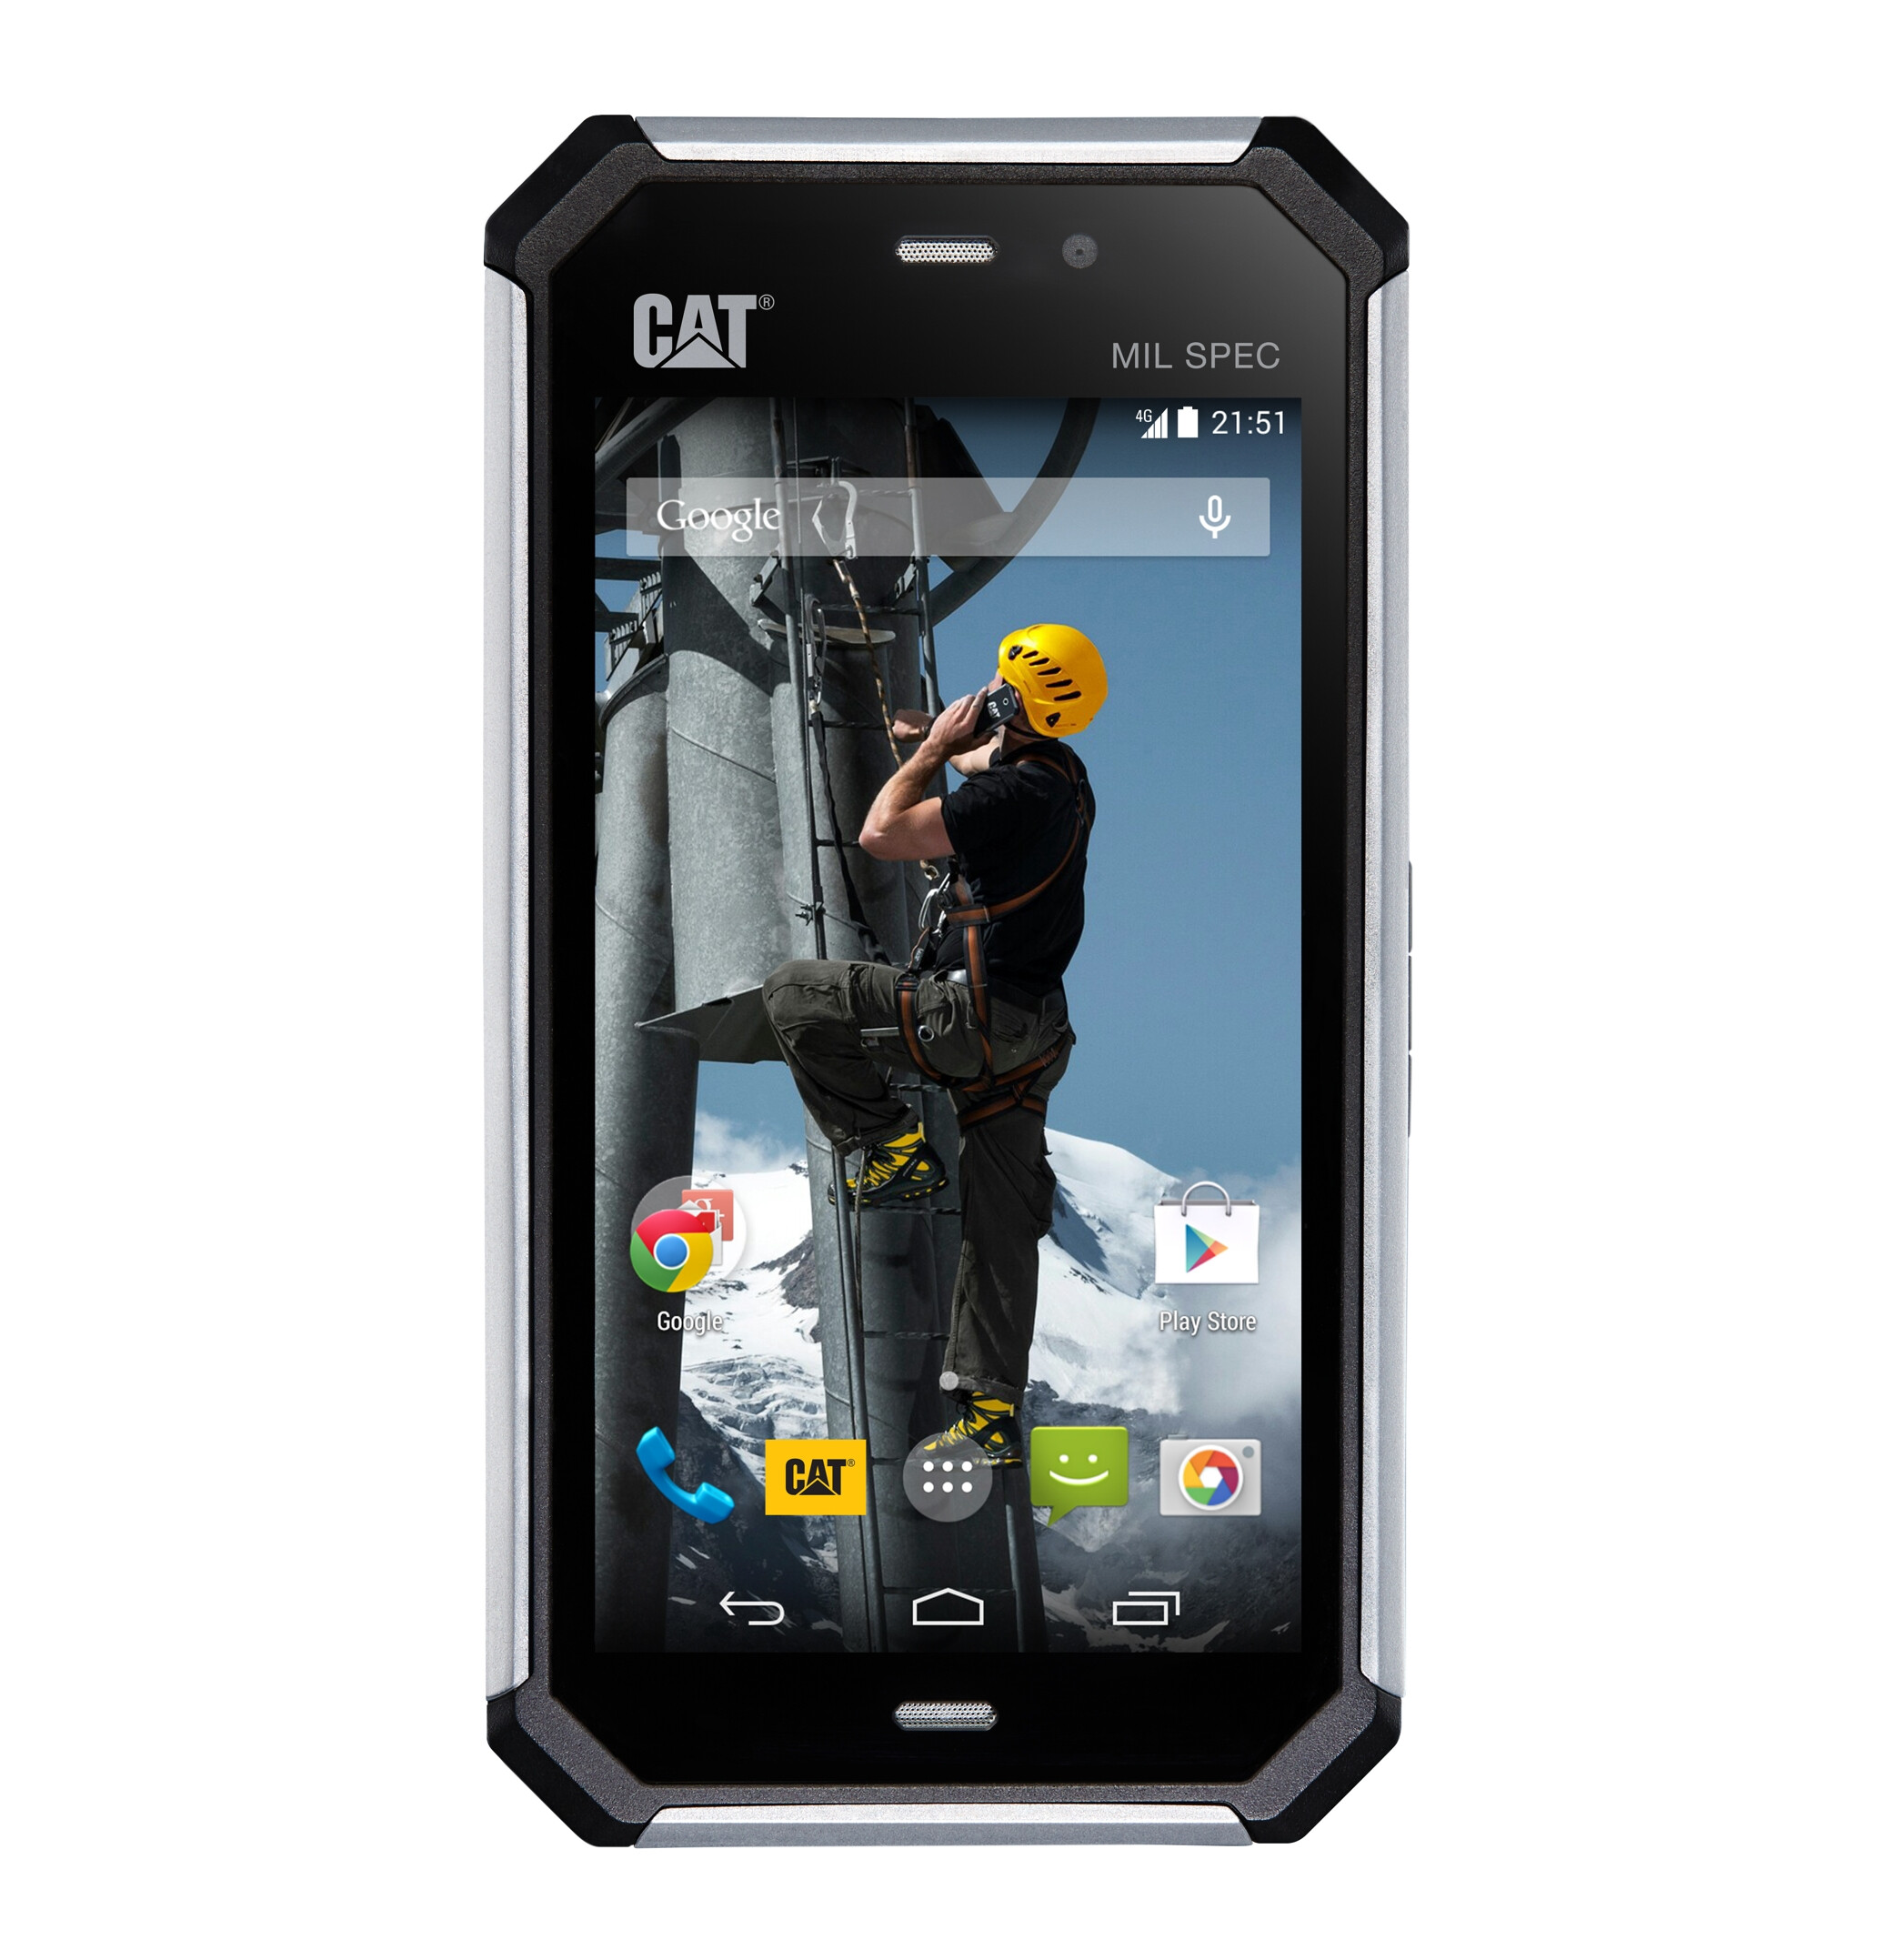 Cat's New S50 Rugged Smartphone Features LTE, Snapdragon